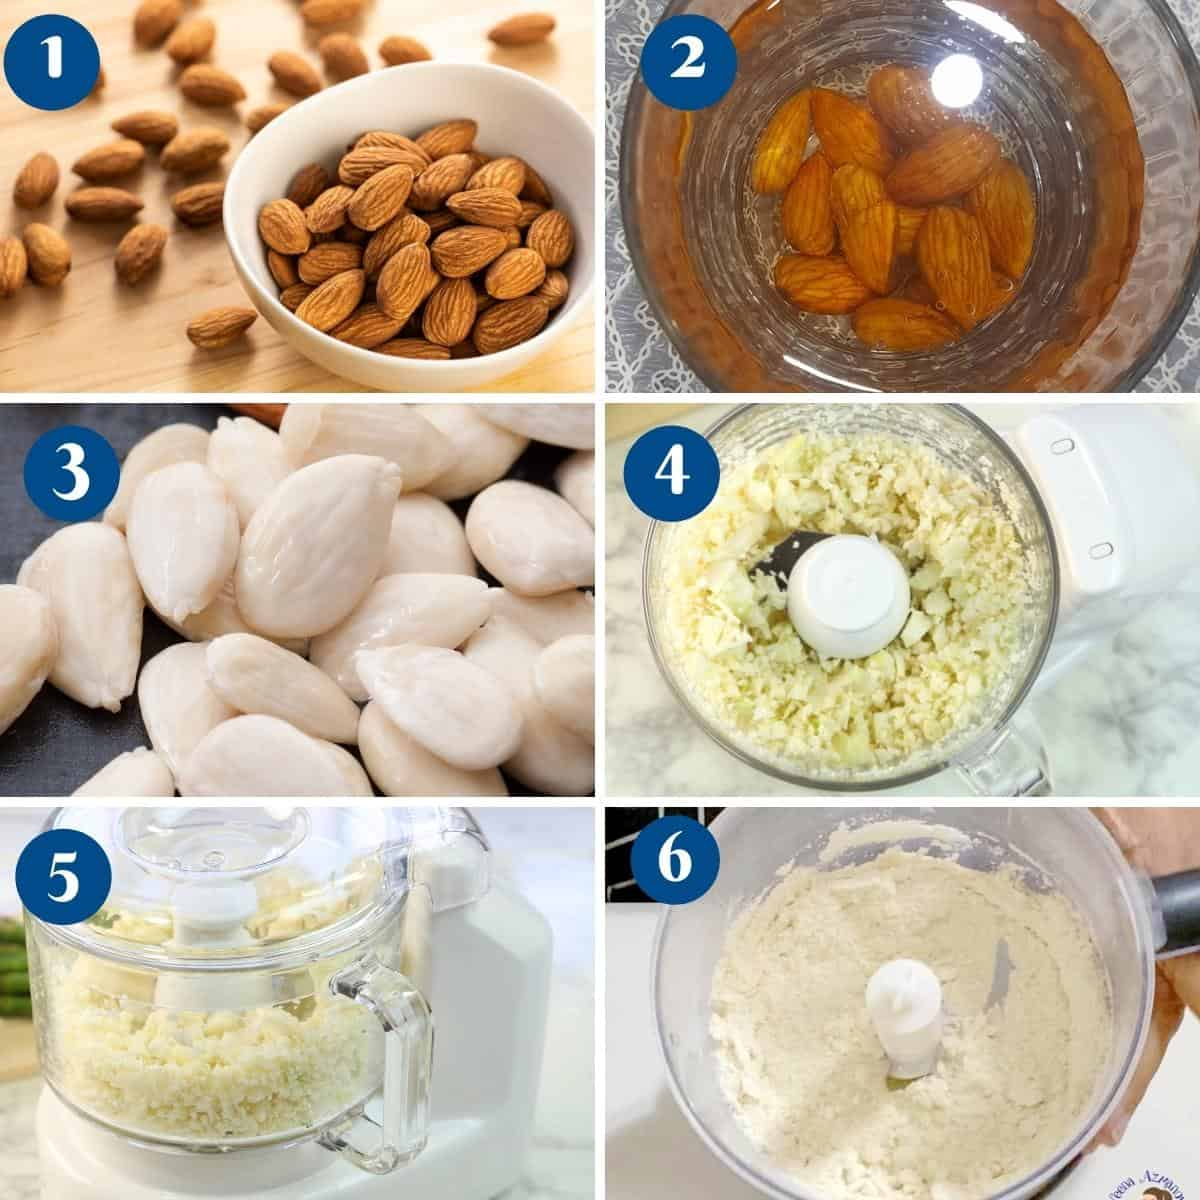 Progress pictures collage making almond meal.